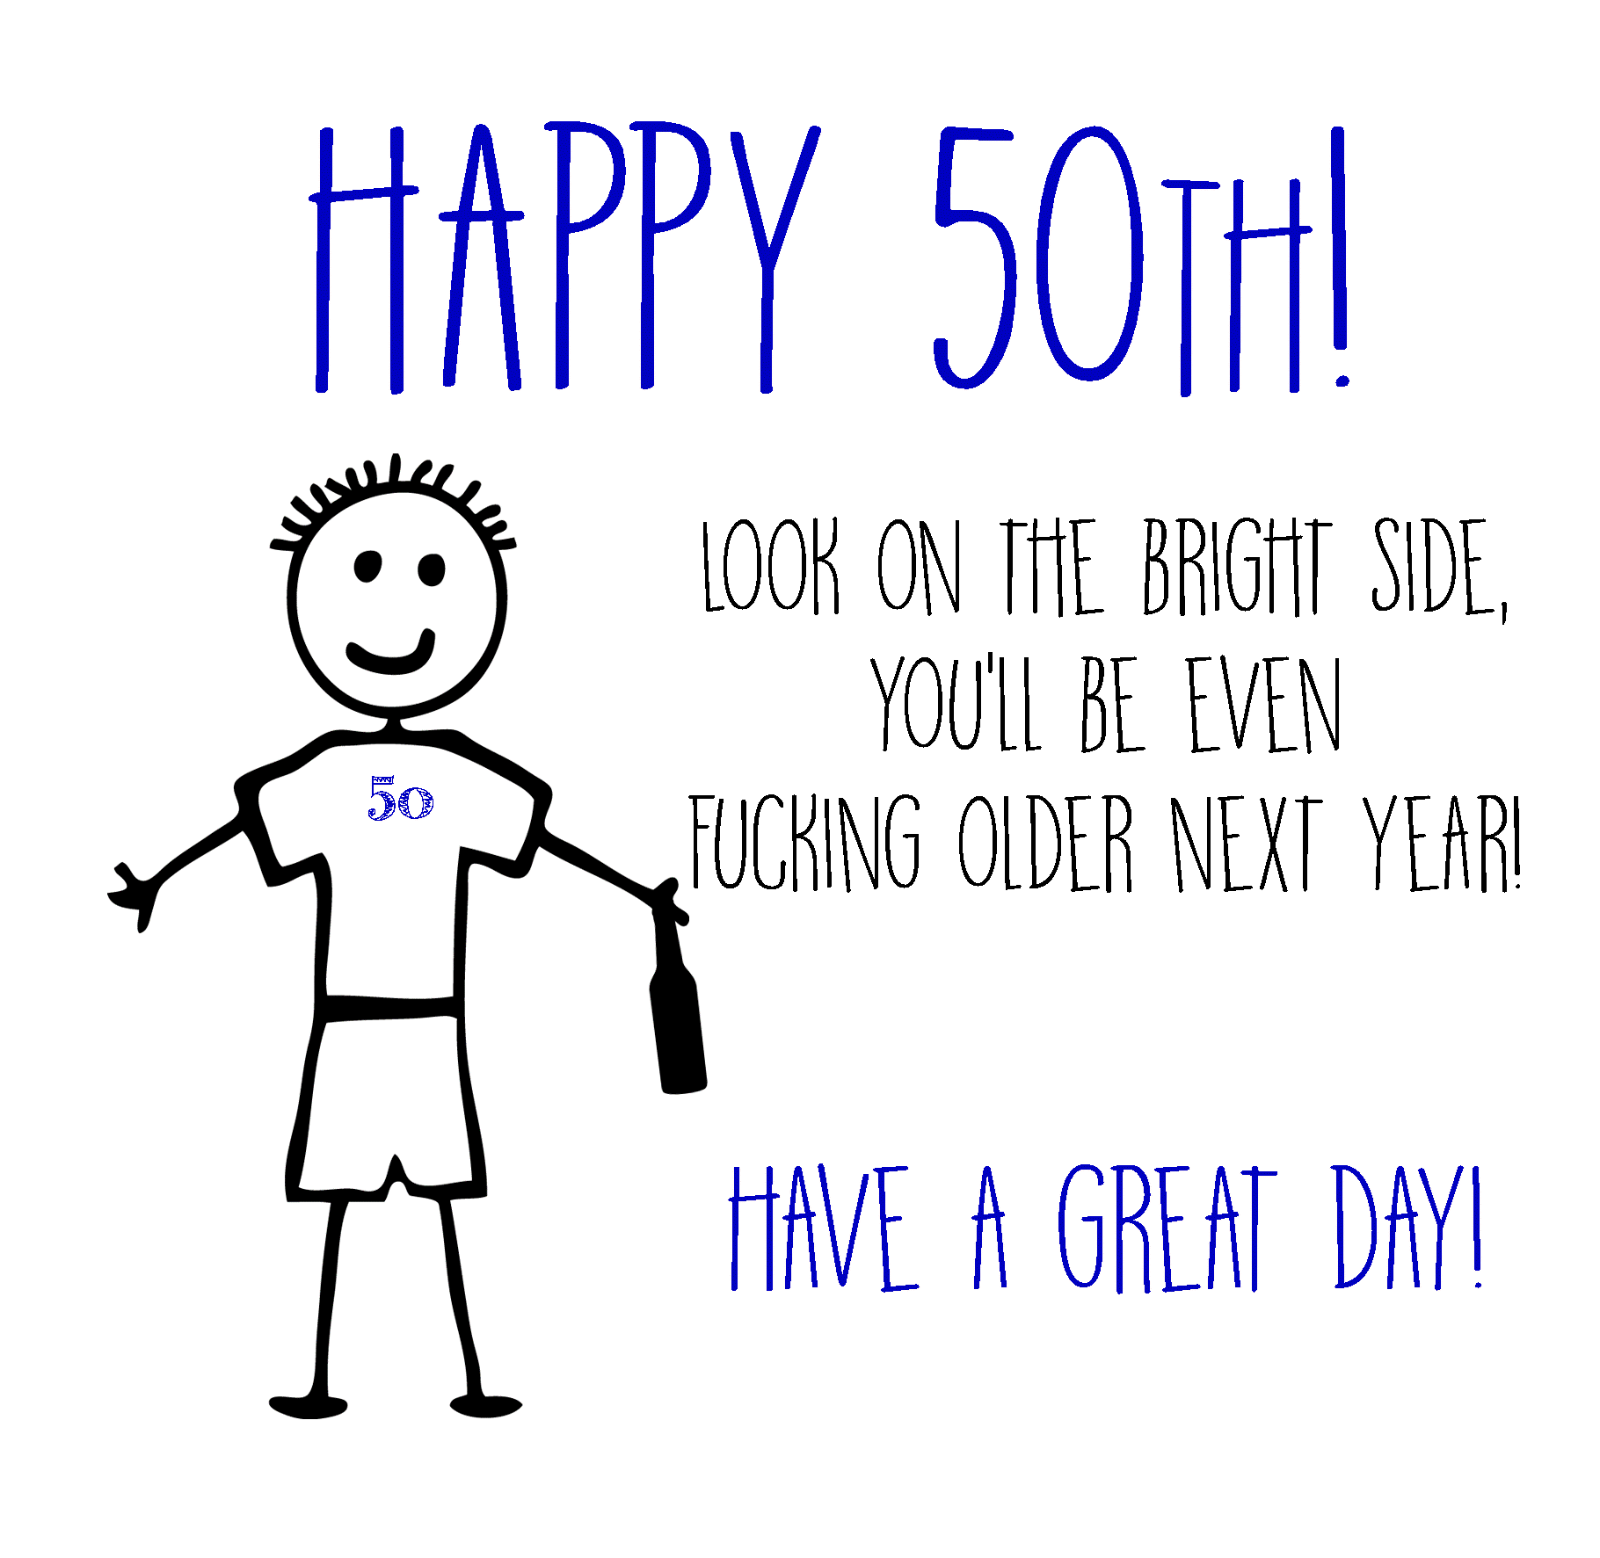 50th Birthday Cards Funny Image collections Free Birthday Cards